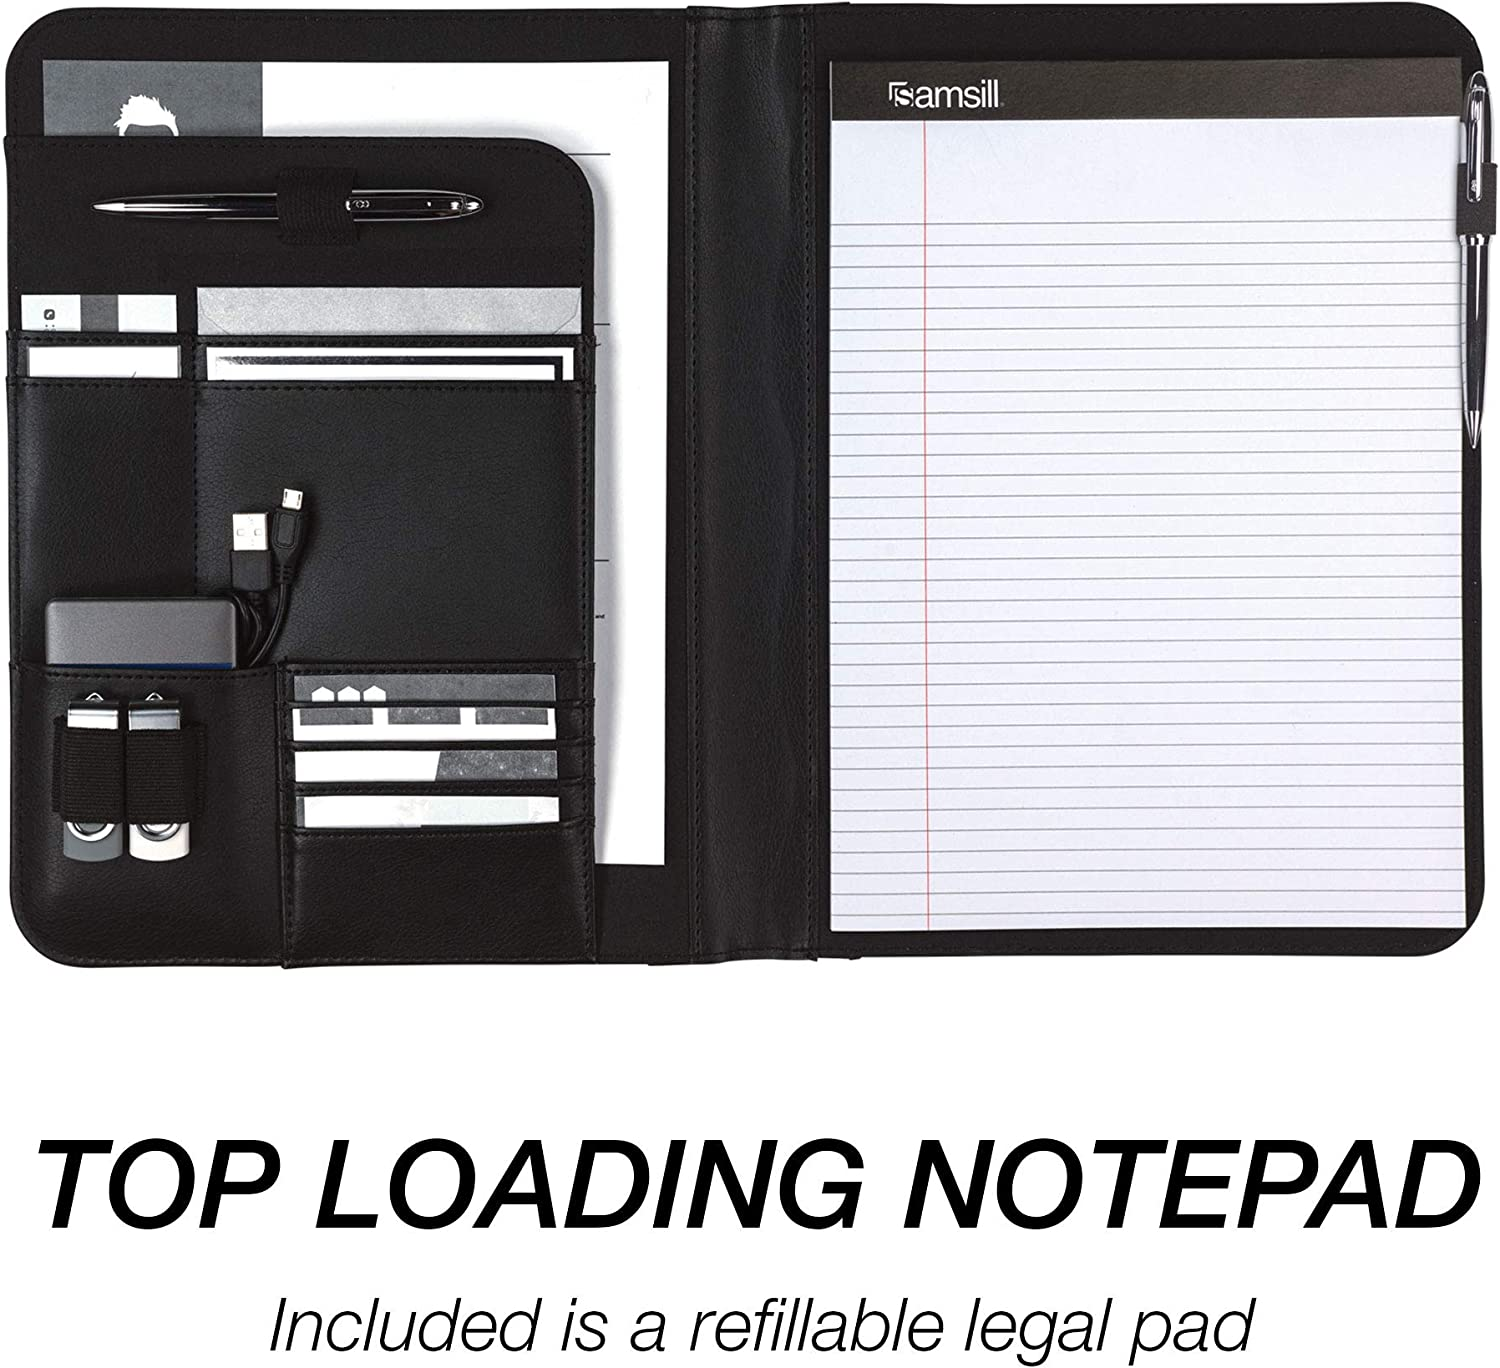 Resume Portfolio//Business Portfolio with Secure Zippered Closure Expandable Document Organizer /& Writing Pad Black 10.1-inch Tablet Sleeve Samsill Executive Padfolio with Spine Accent